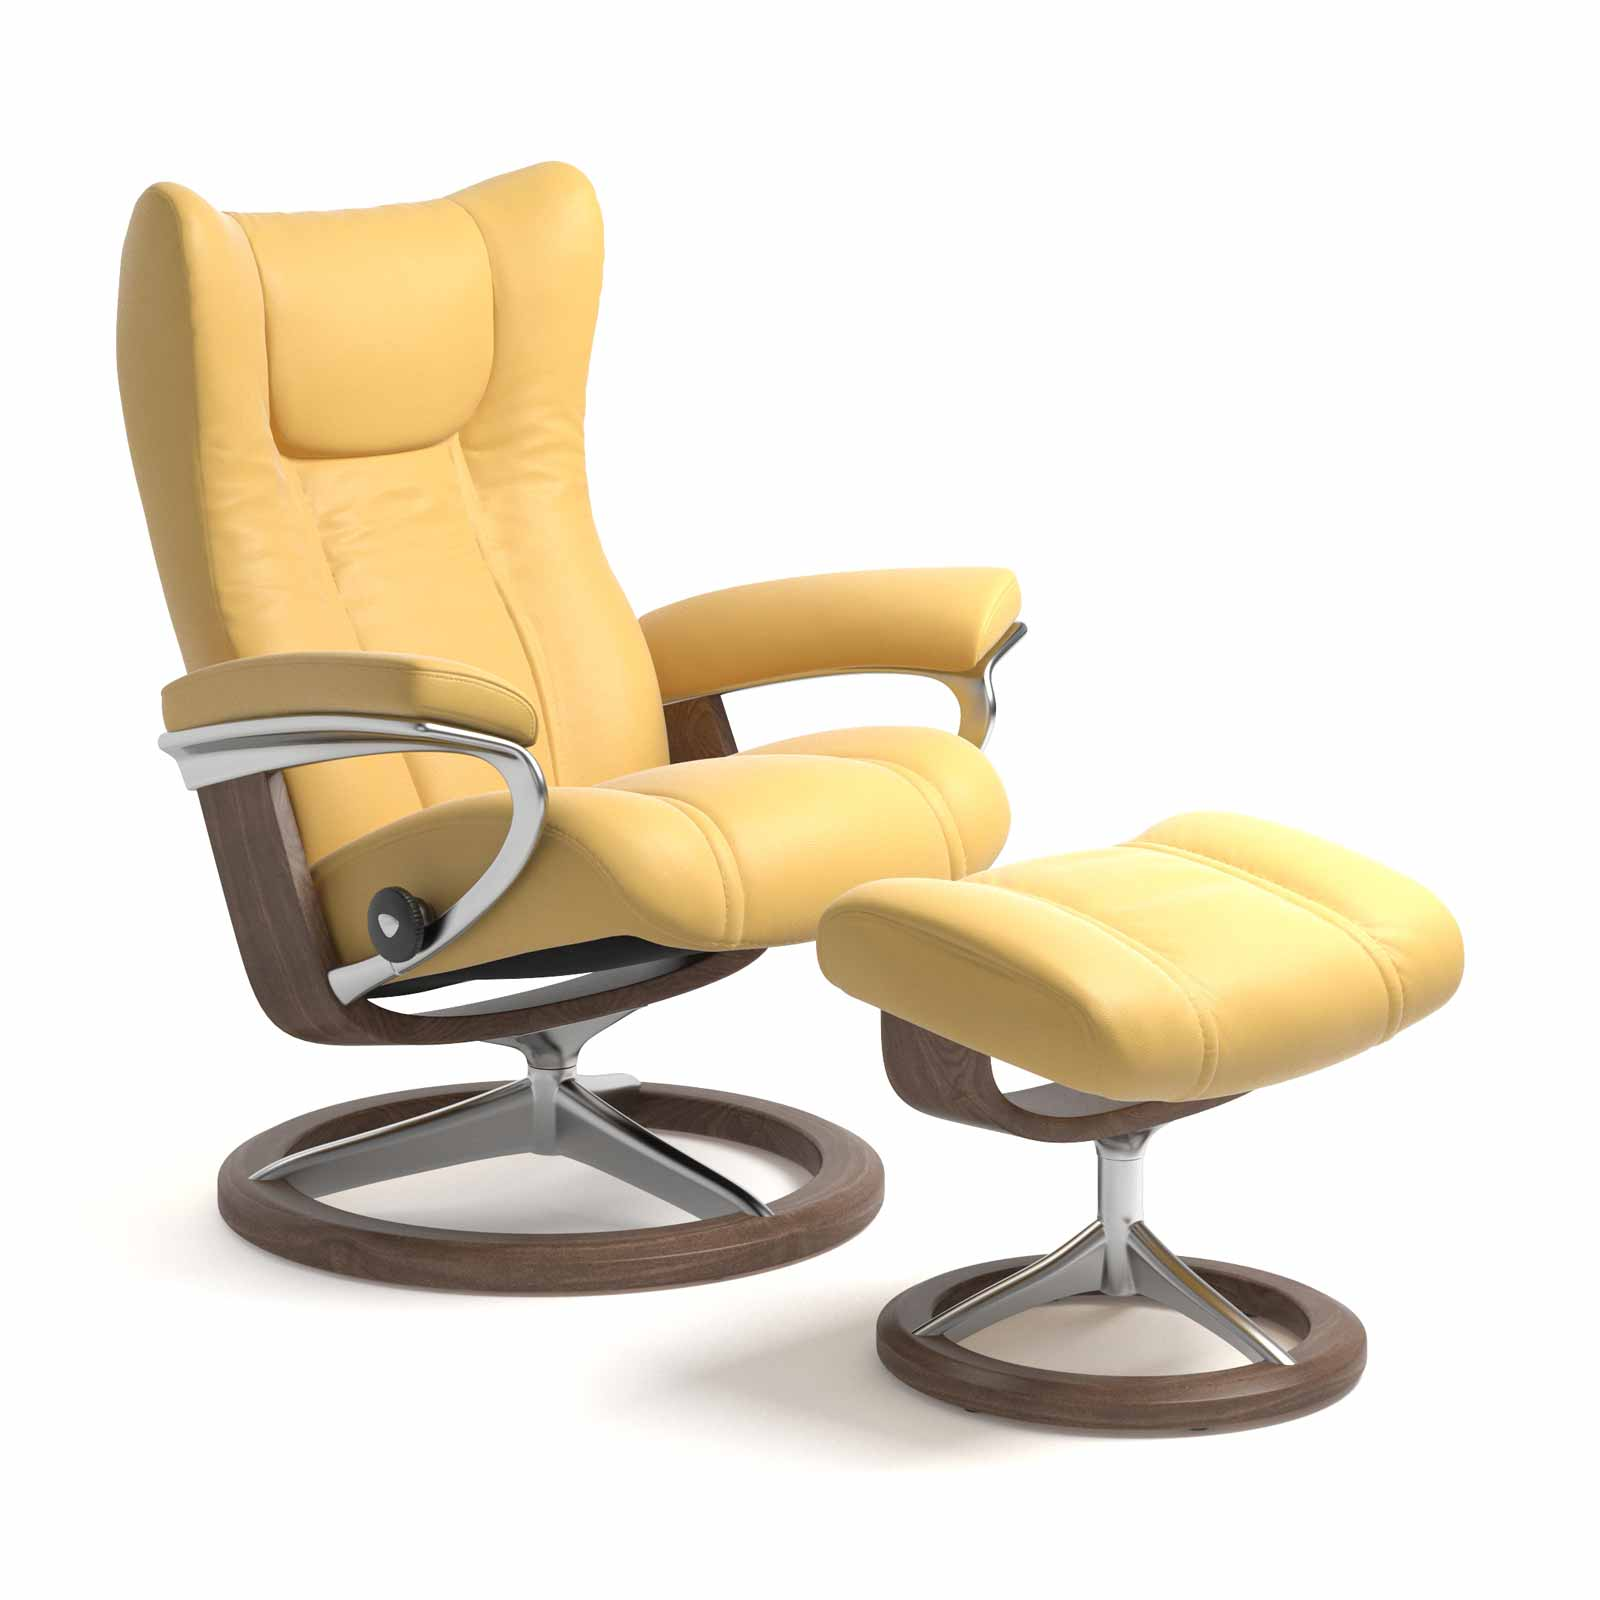 Stressless Wing Signature Sessel Stressless Sessel Wing Signature Batick Mimosa Mit Hocker